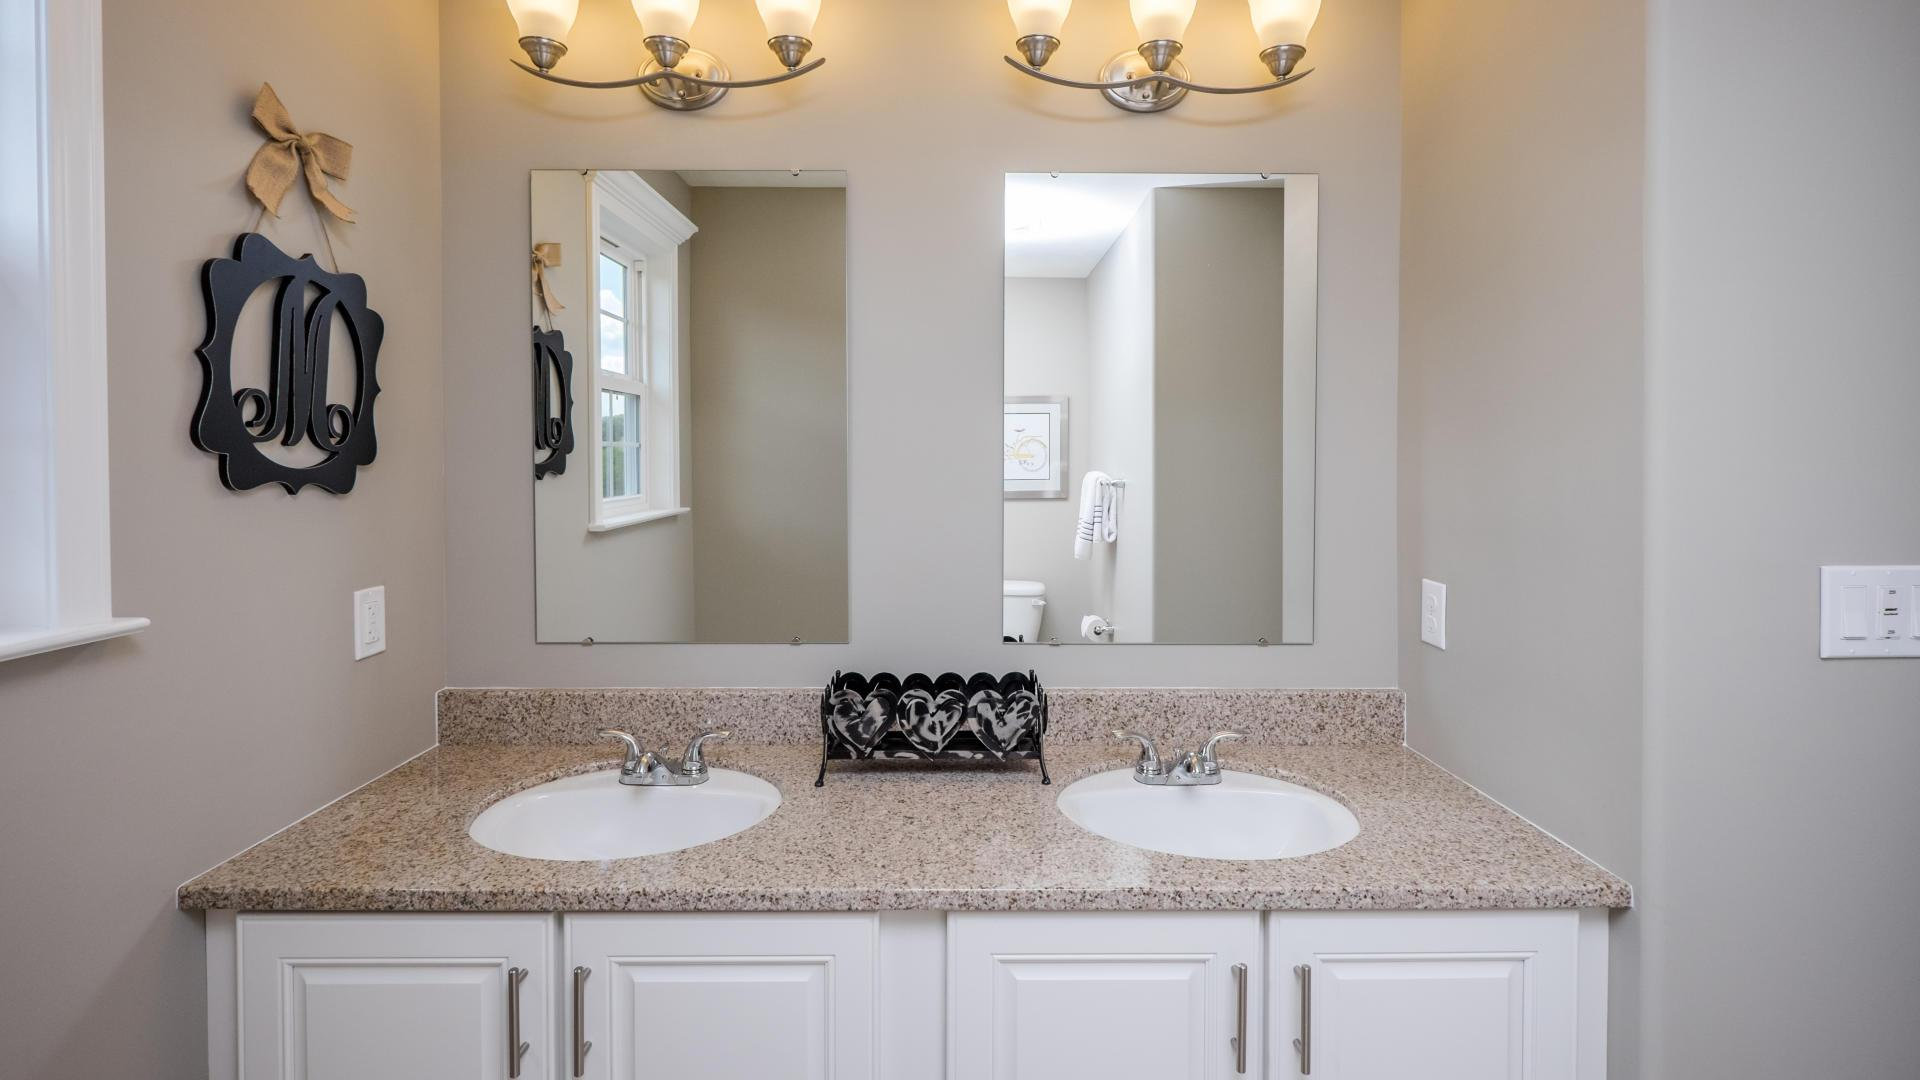 Bathroom featured in the Eisenhower By Maronda Homes in Pittsburgh, PA